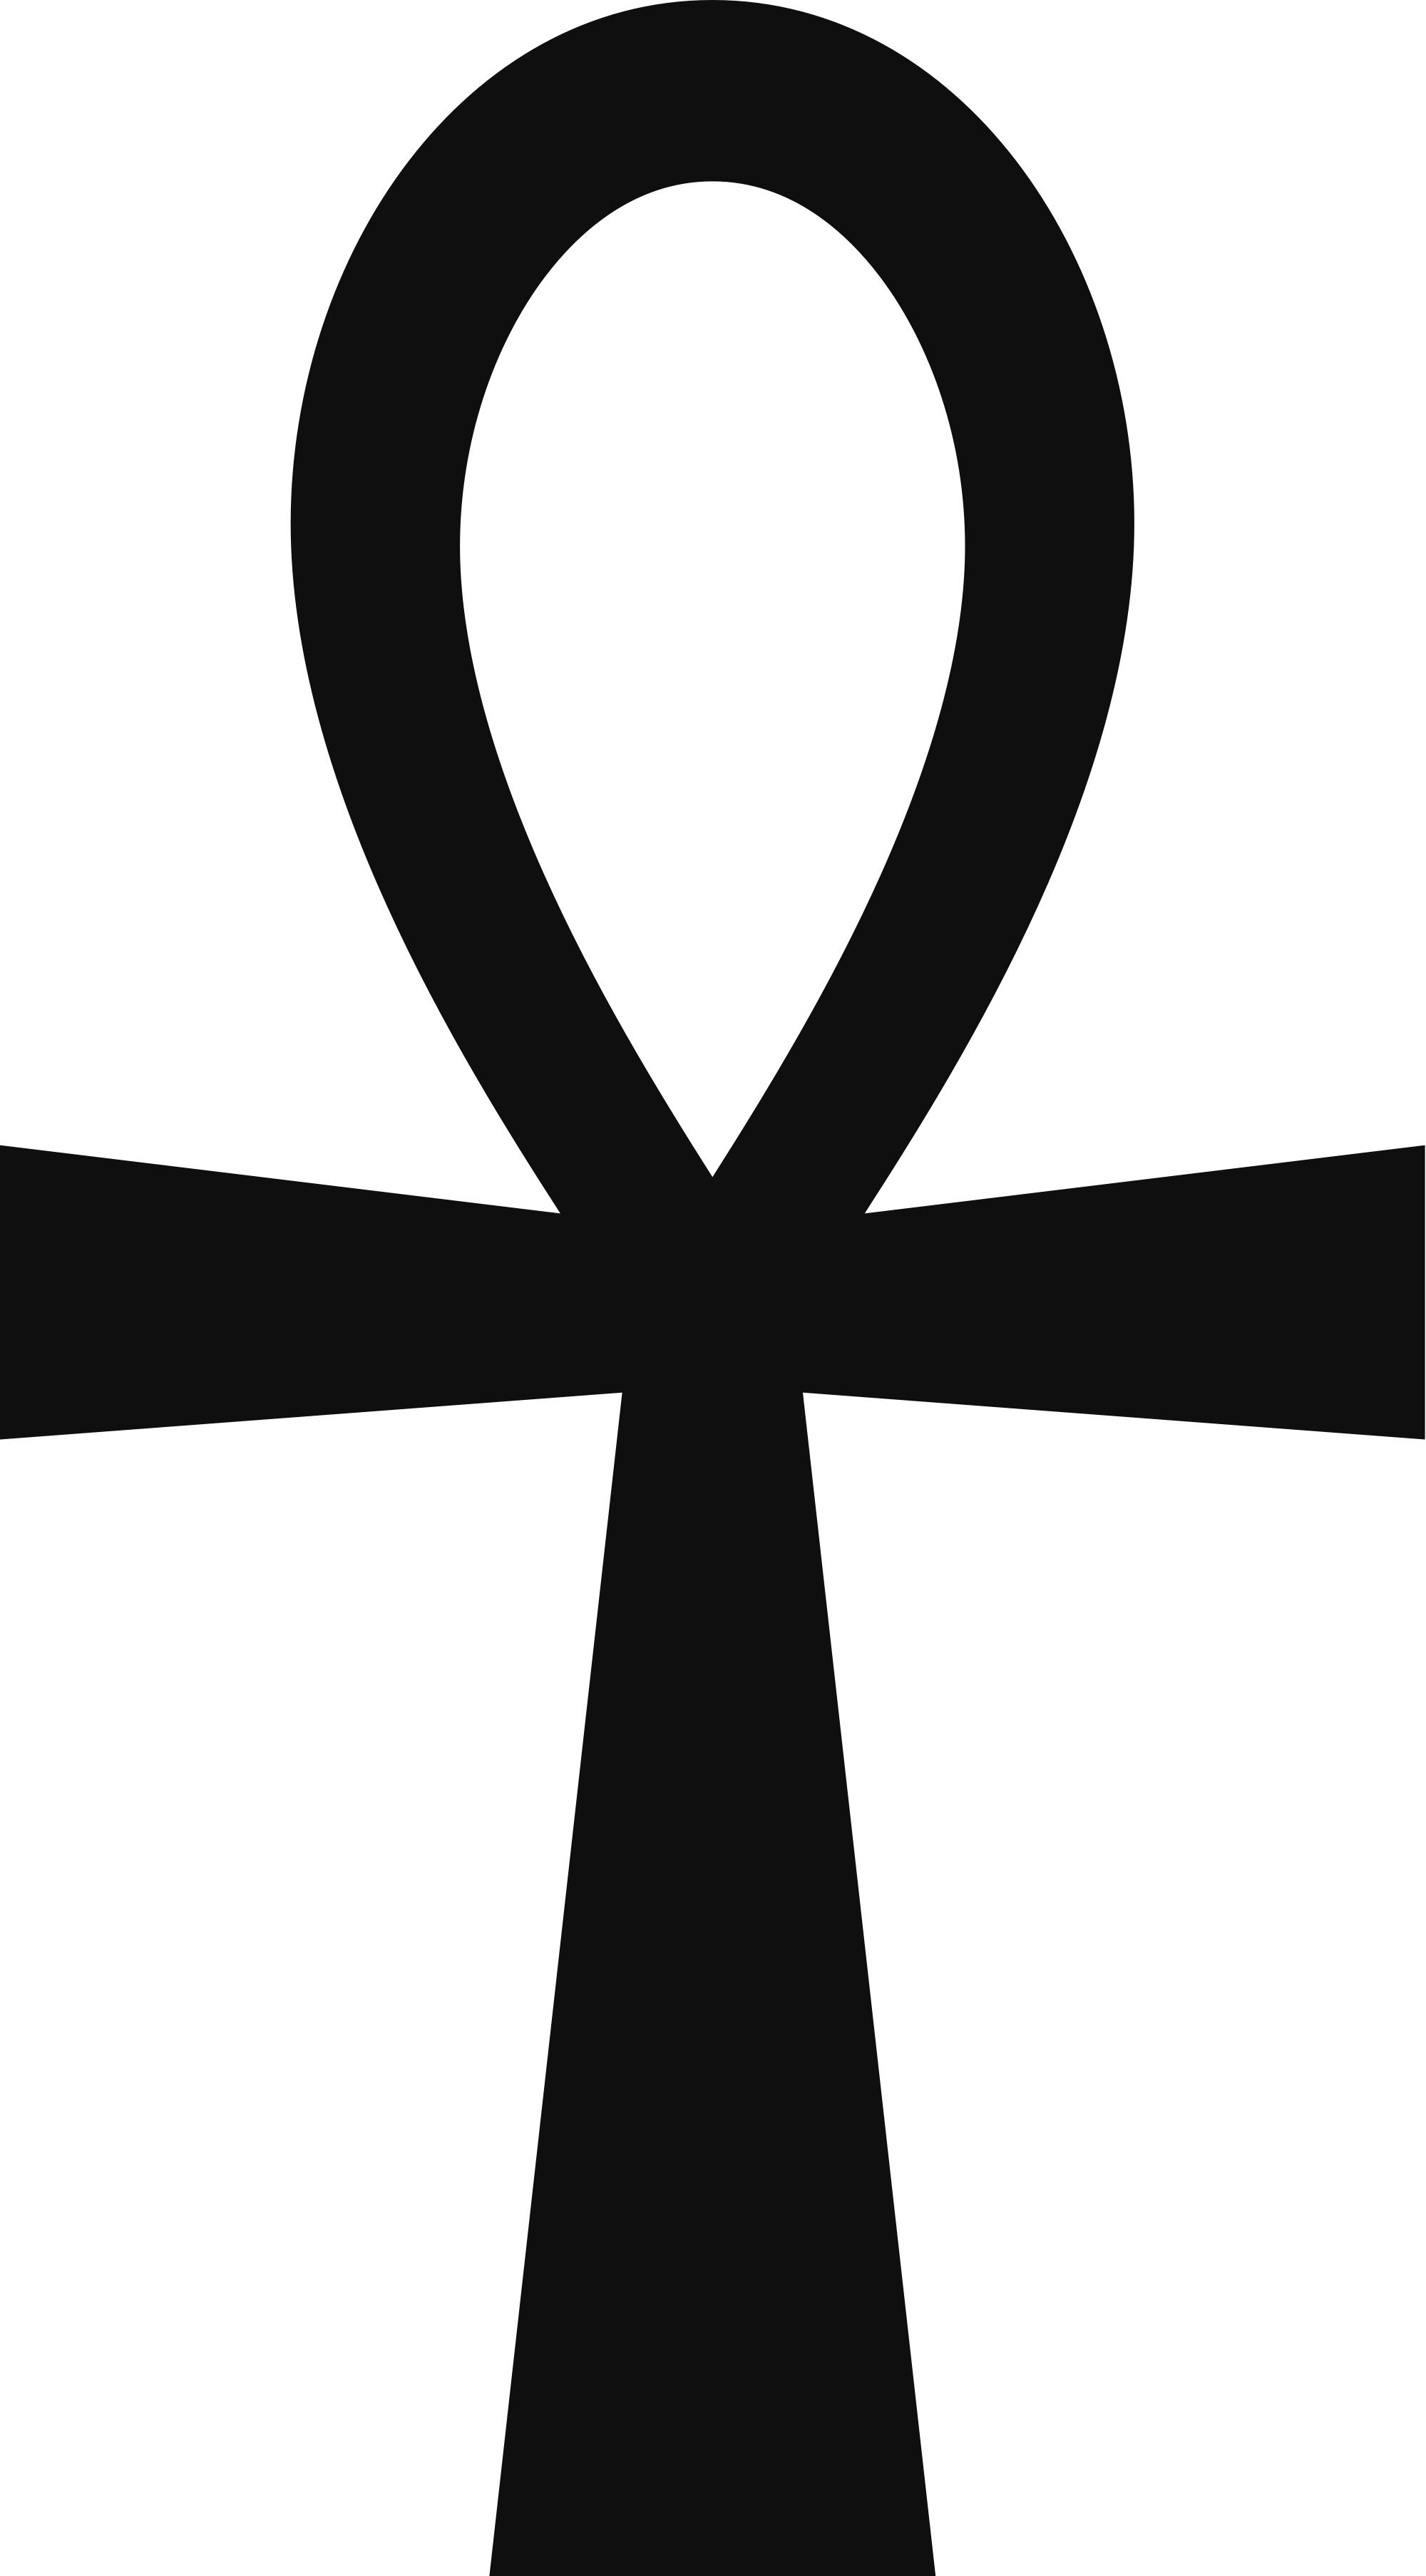 Cross key clipart picture download Ankh Group (53+) picture download